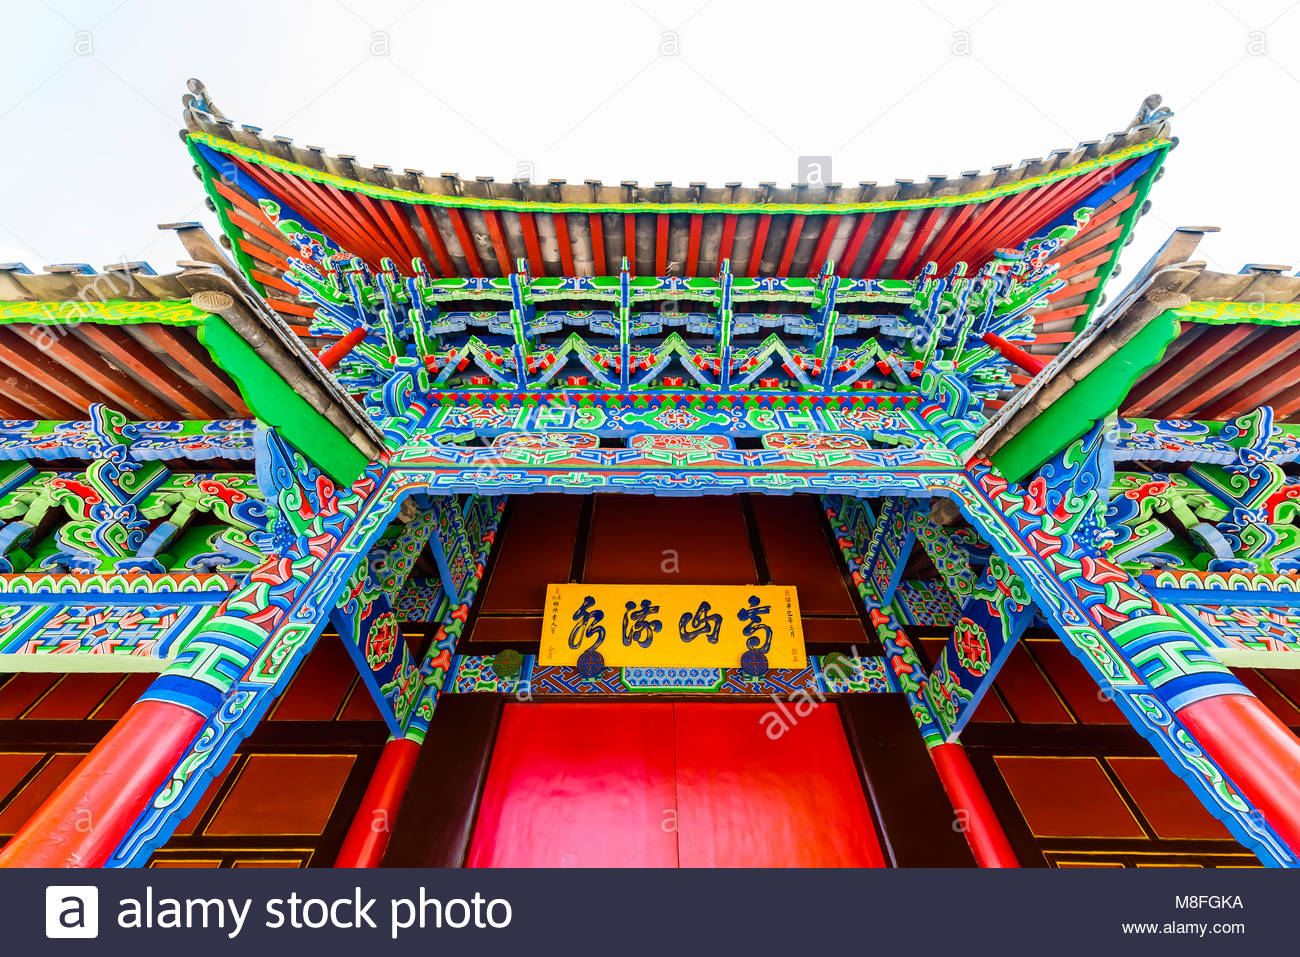 A pavilion in Black Dragon Pool Park, Lijiang, Yunnan Province, China. - Stock Image